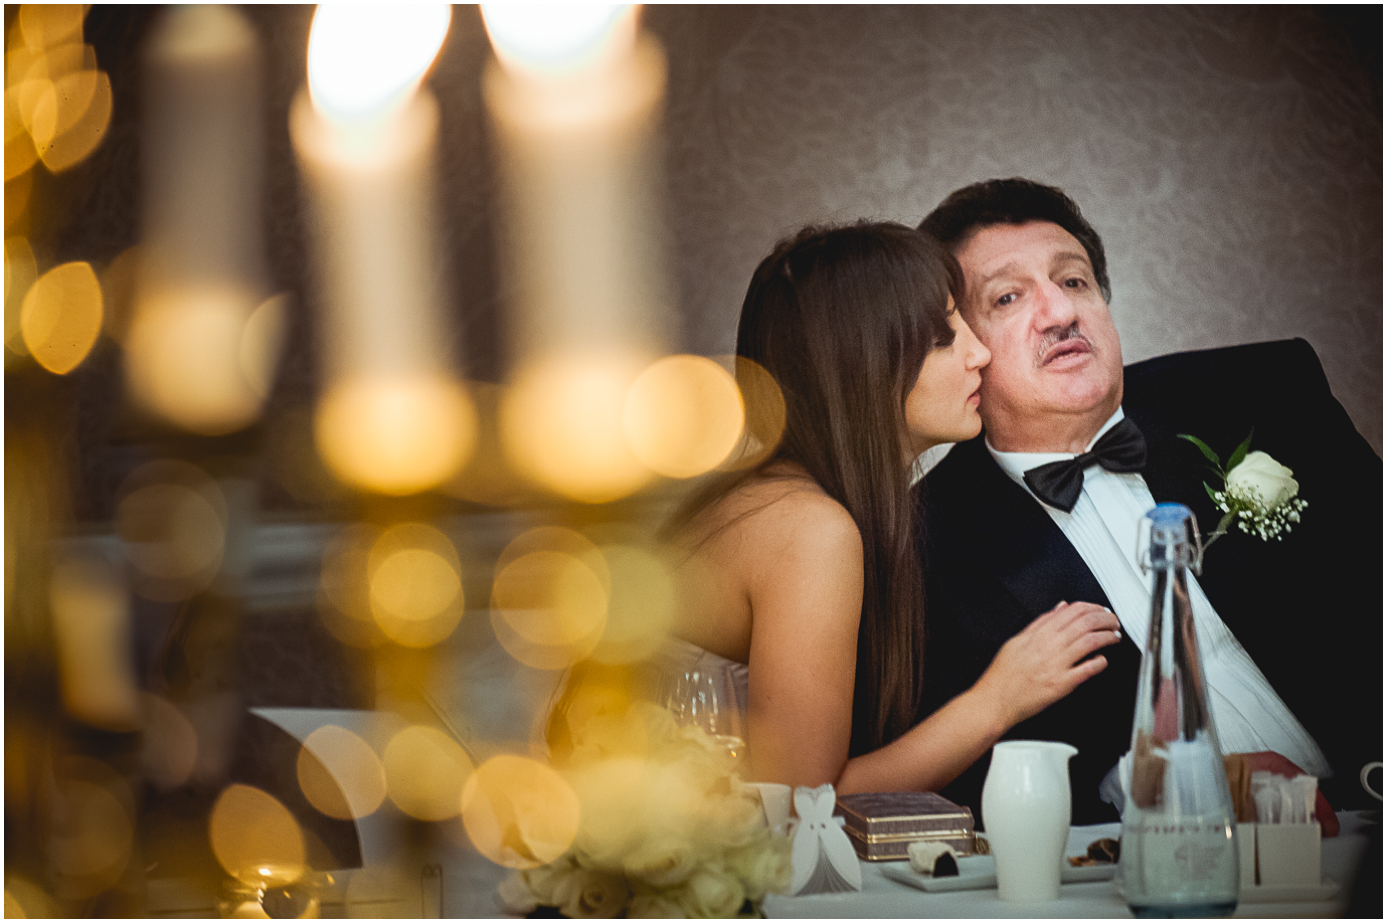 64 - Esmat and Angus - St. Ermin's Hotel London wedding photographer